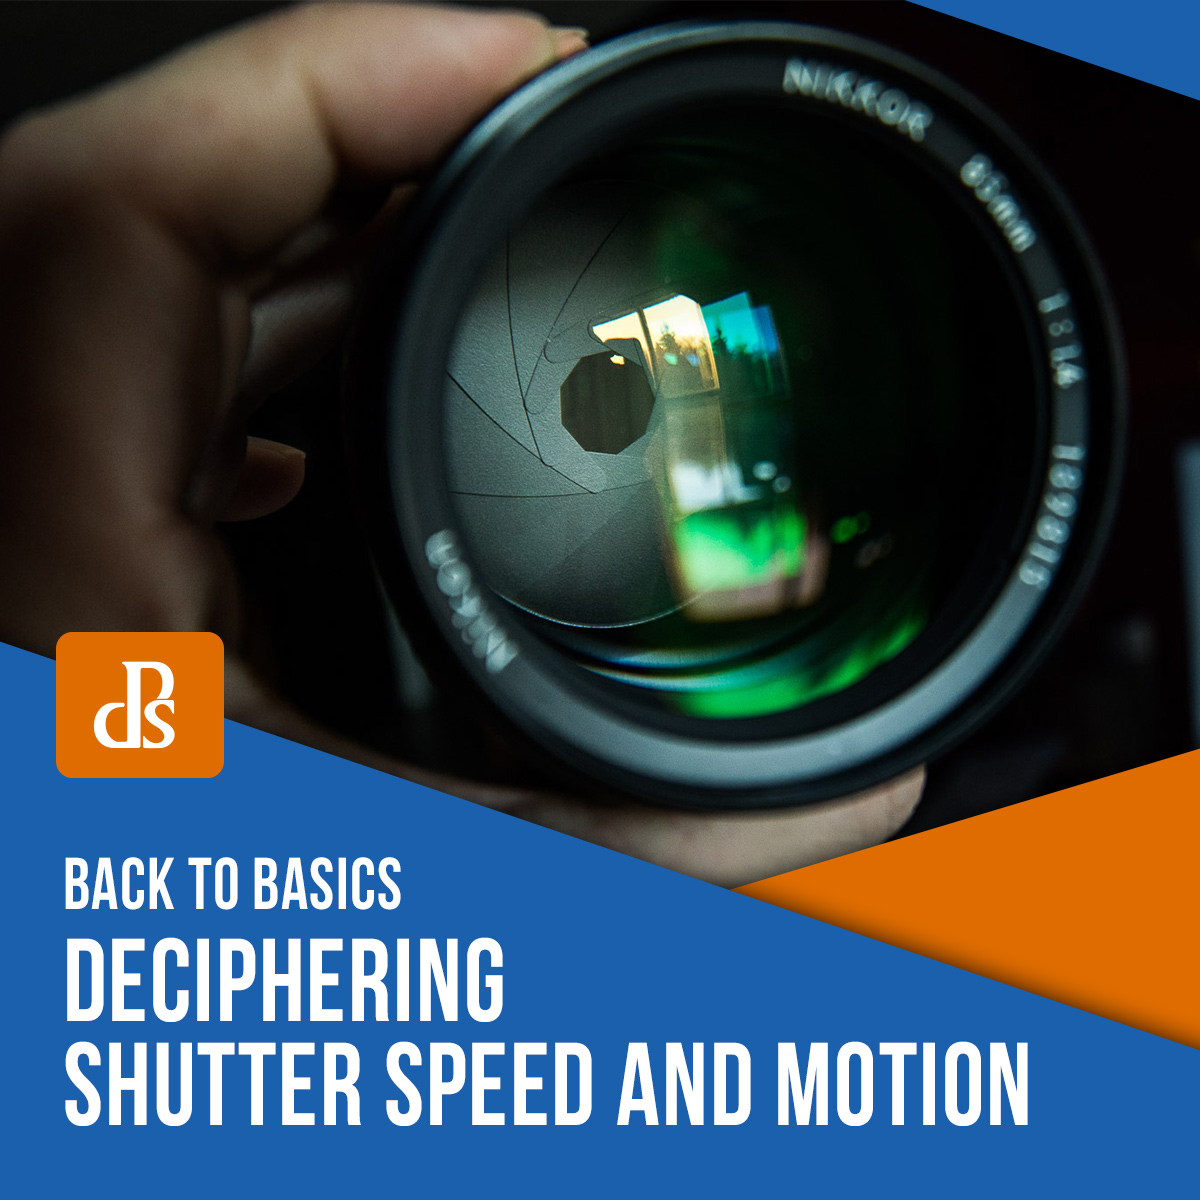 back-to-basics-shutter-speed-and-motion